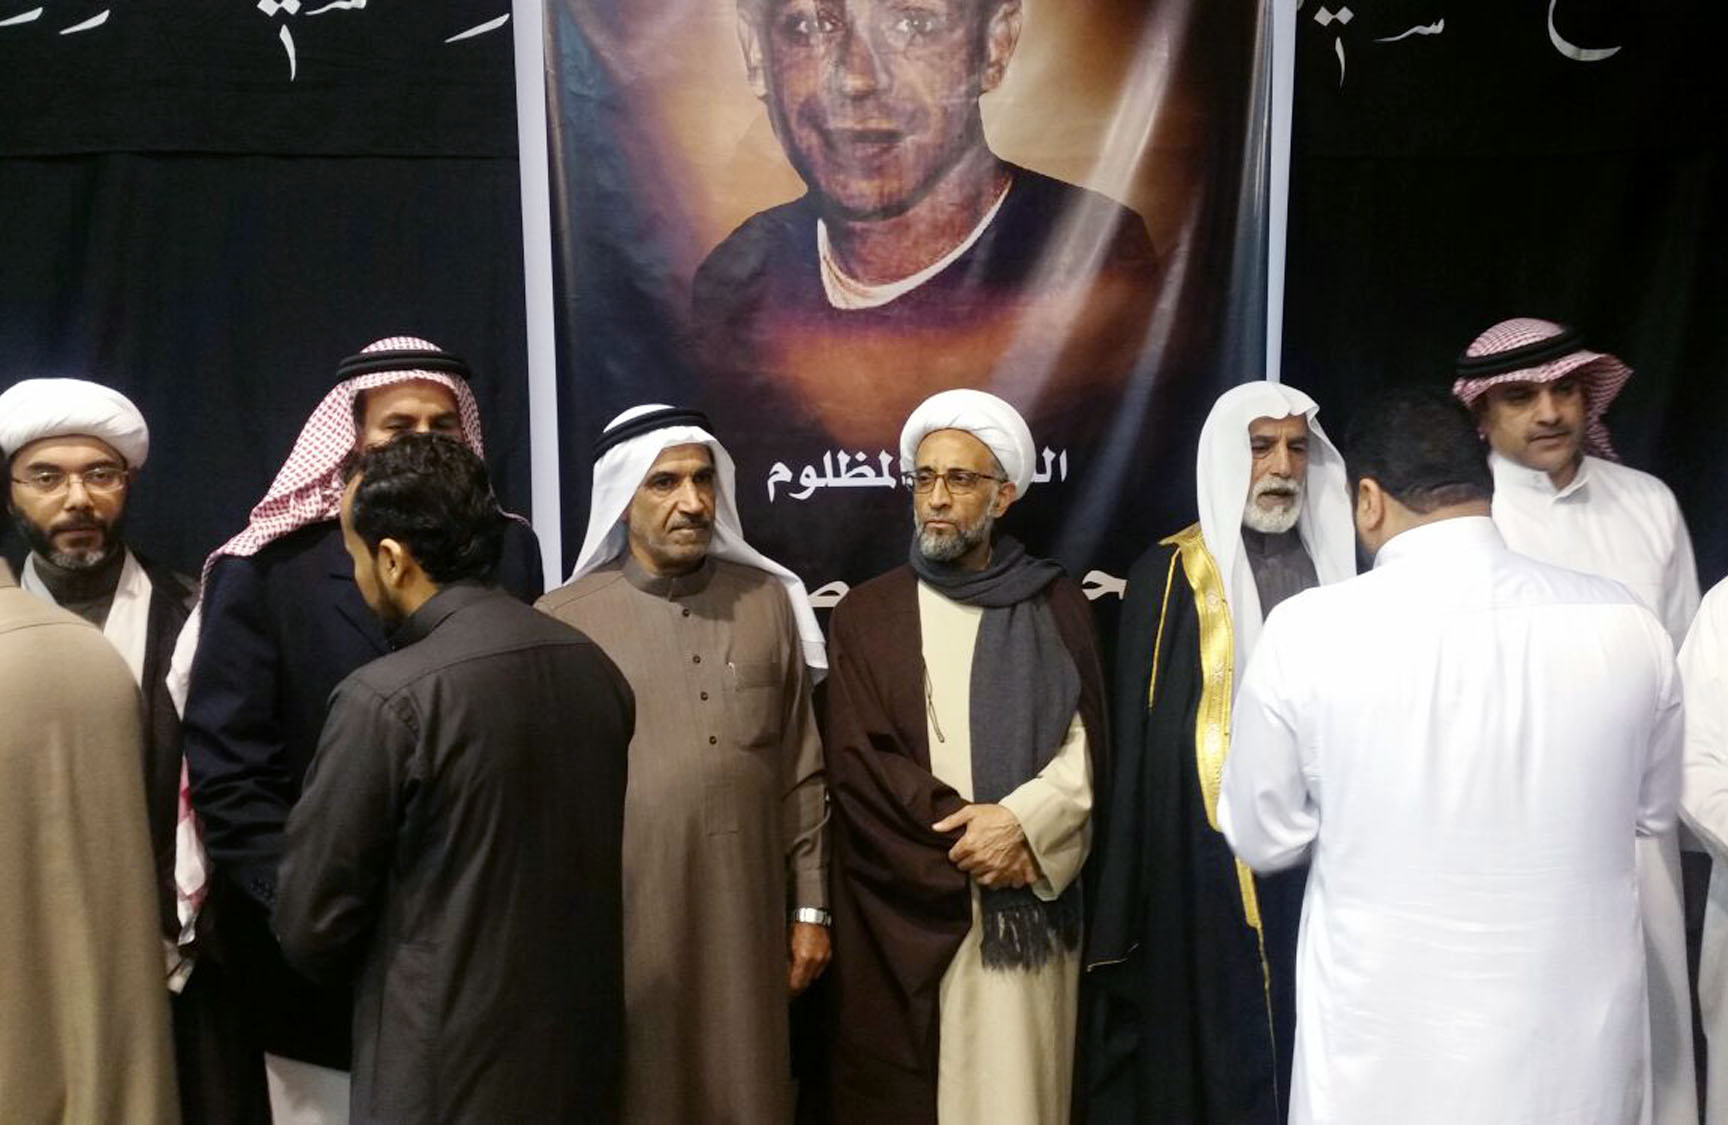 Sheikh Hassan al-Saffar, a top Shiite cleric from Qatif, center, stands with family members of Shiite Sheikh Nimr al-Nimr and other Shiite notables, as they receive condolences on the second day of mourning for him at a mosque in the village of al-Awamiya, eastern Saudi Arabia on Tuesday, January 5, 2016. Photo: AP